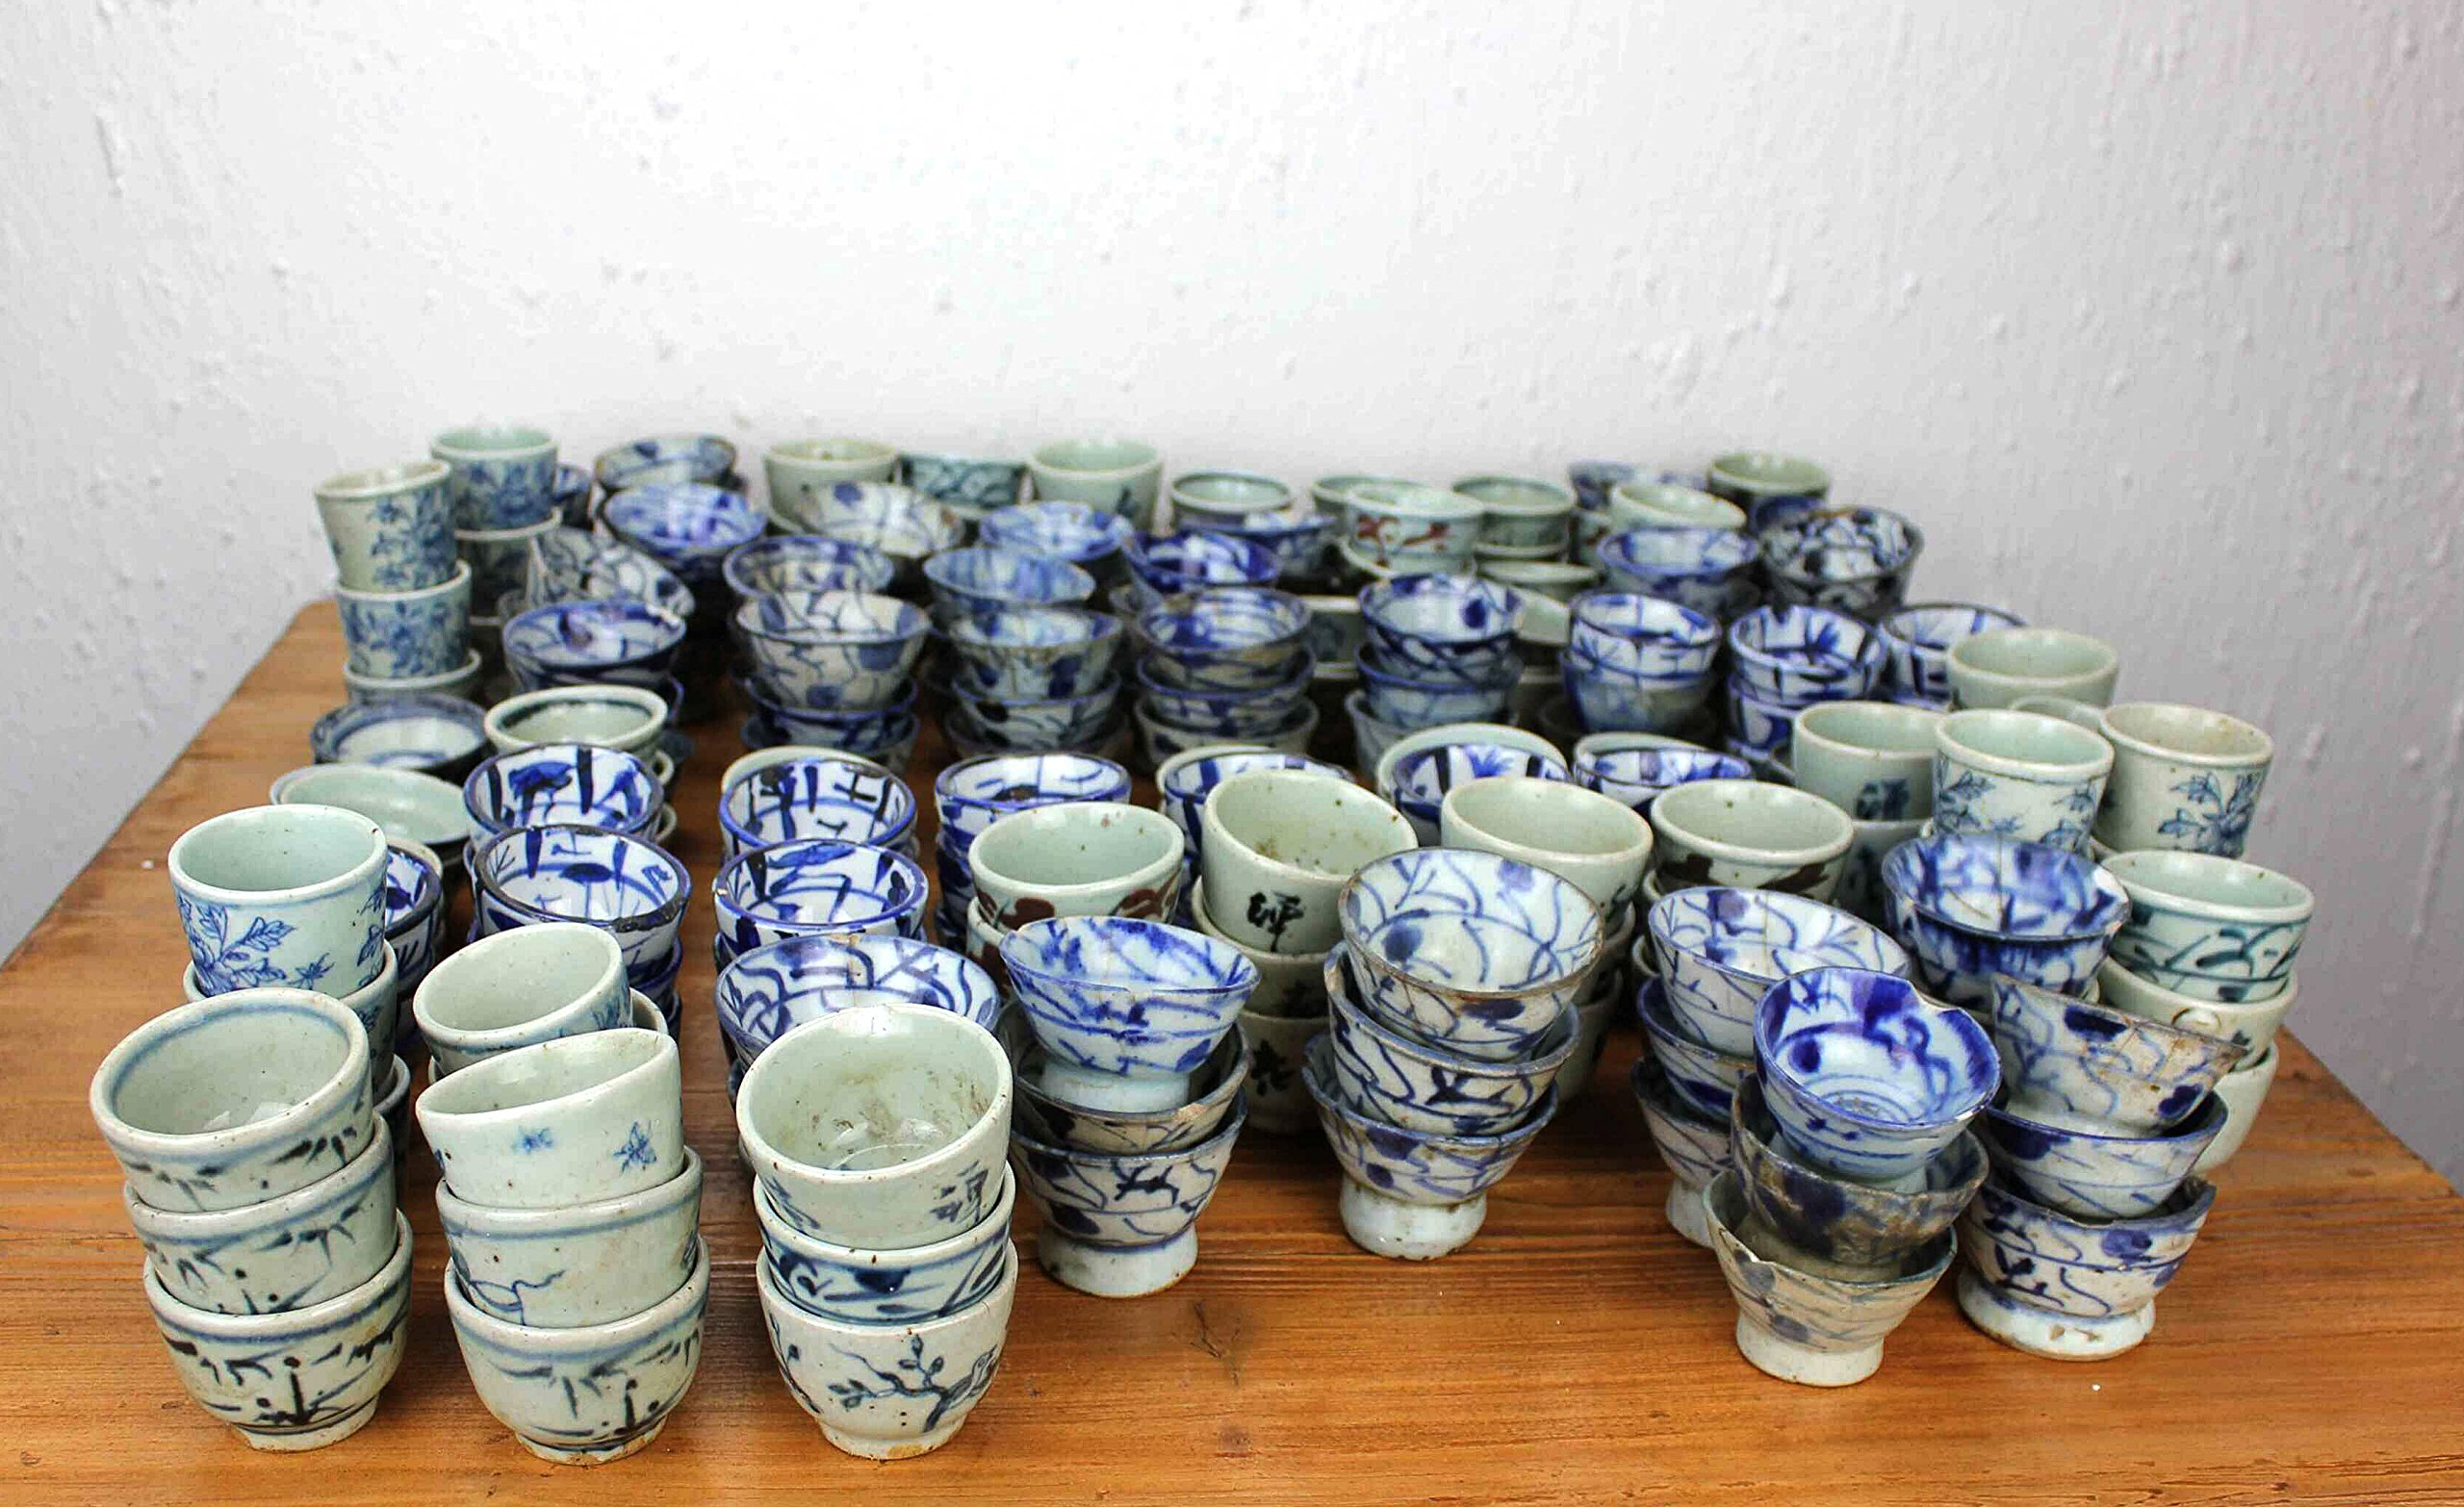 Sarreid SA-AN021 Collection of 250 Cups by Sarreid